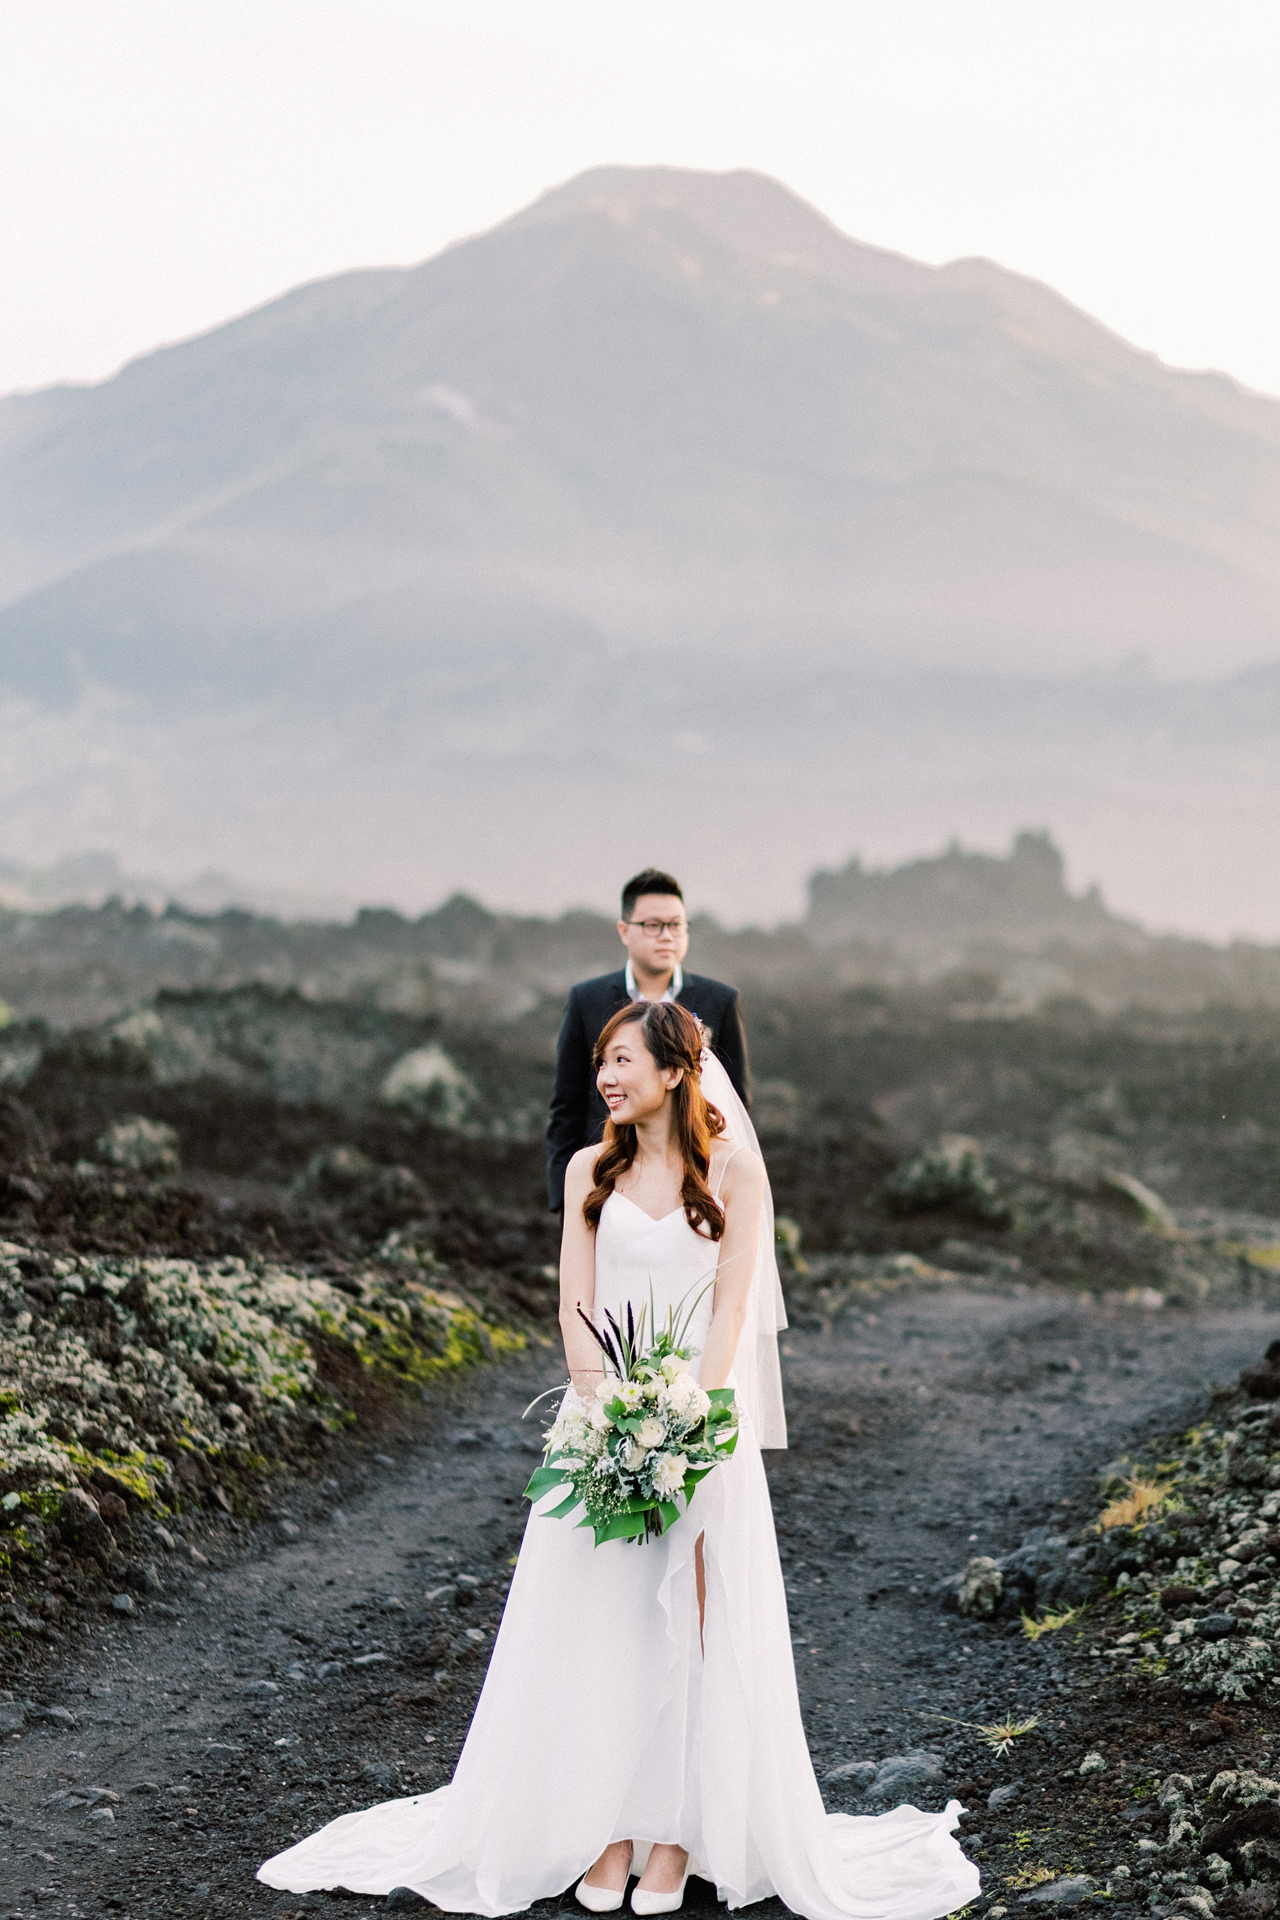 S&Y: Batur Volcano and Nungnung Waterfall Prewedding - Bali Prewedding Photographer 3